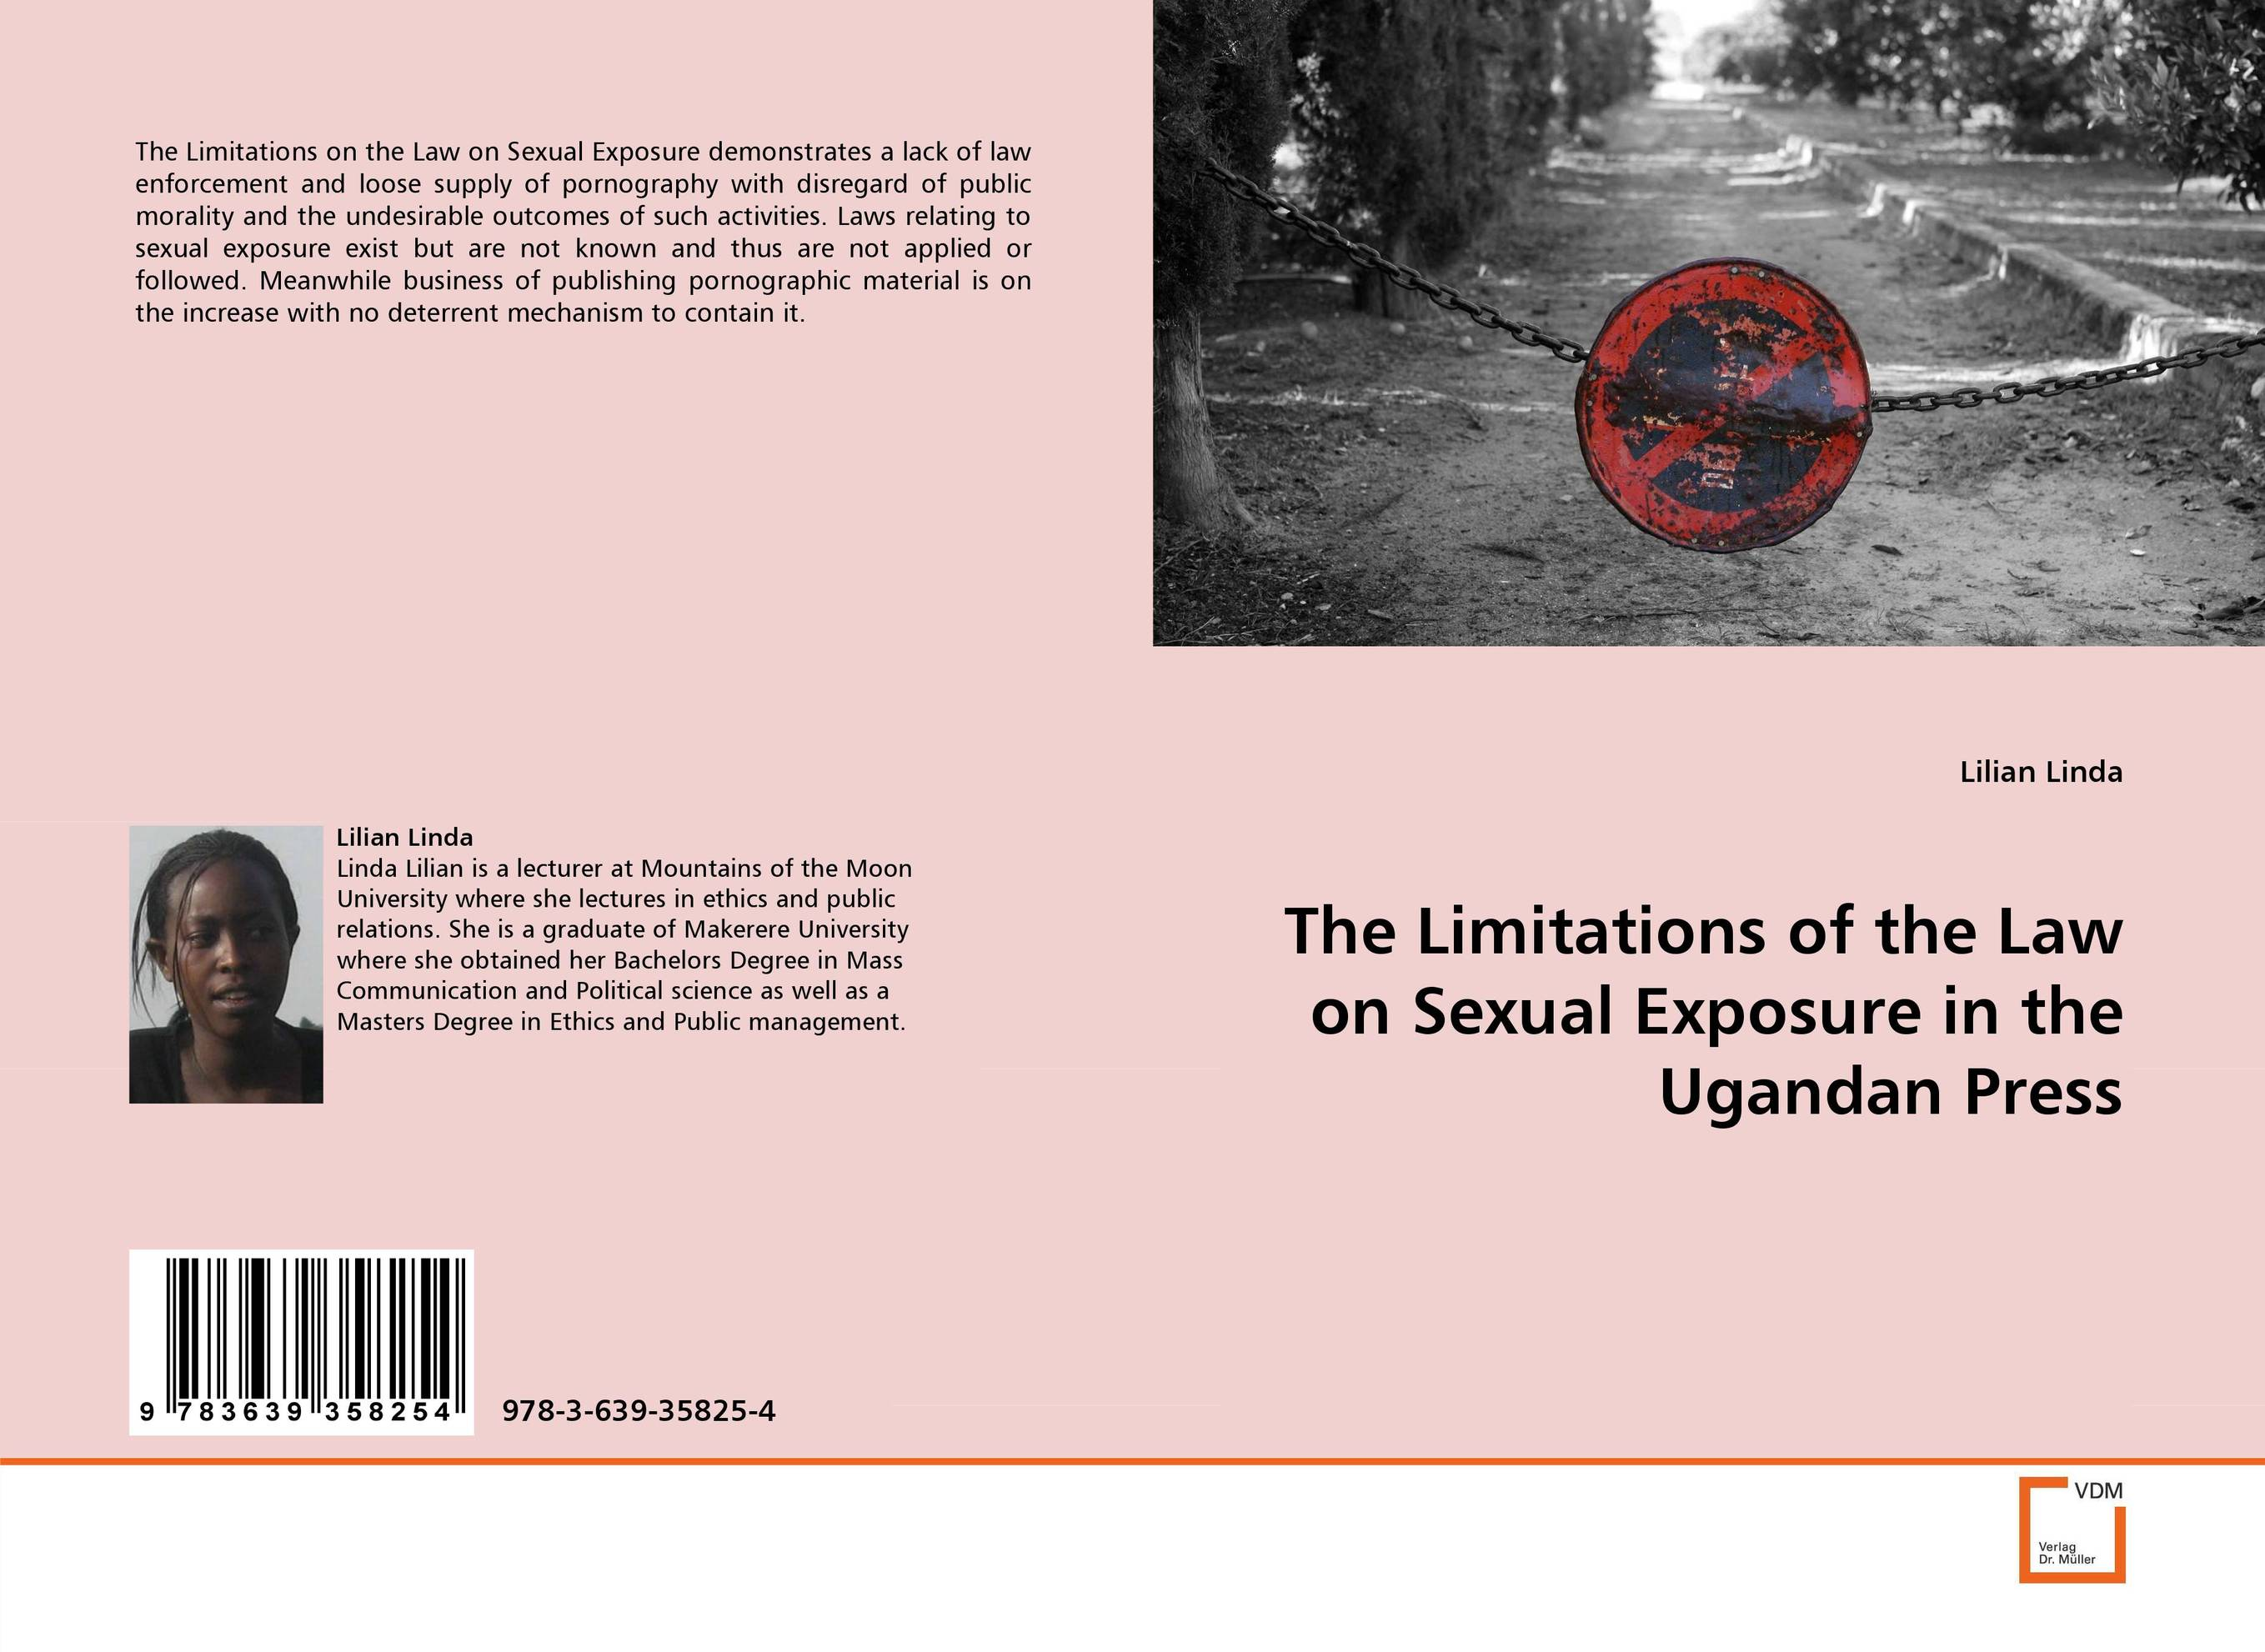 The Limitations of the Law on Sexual Exposure in the Ugandan Press